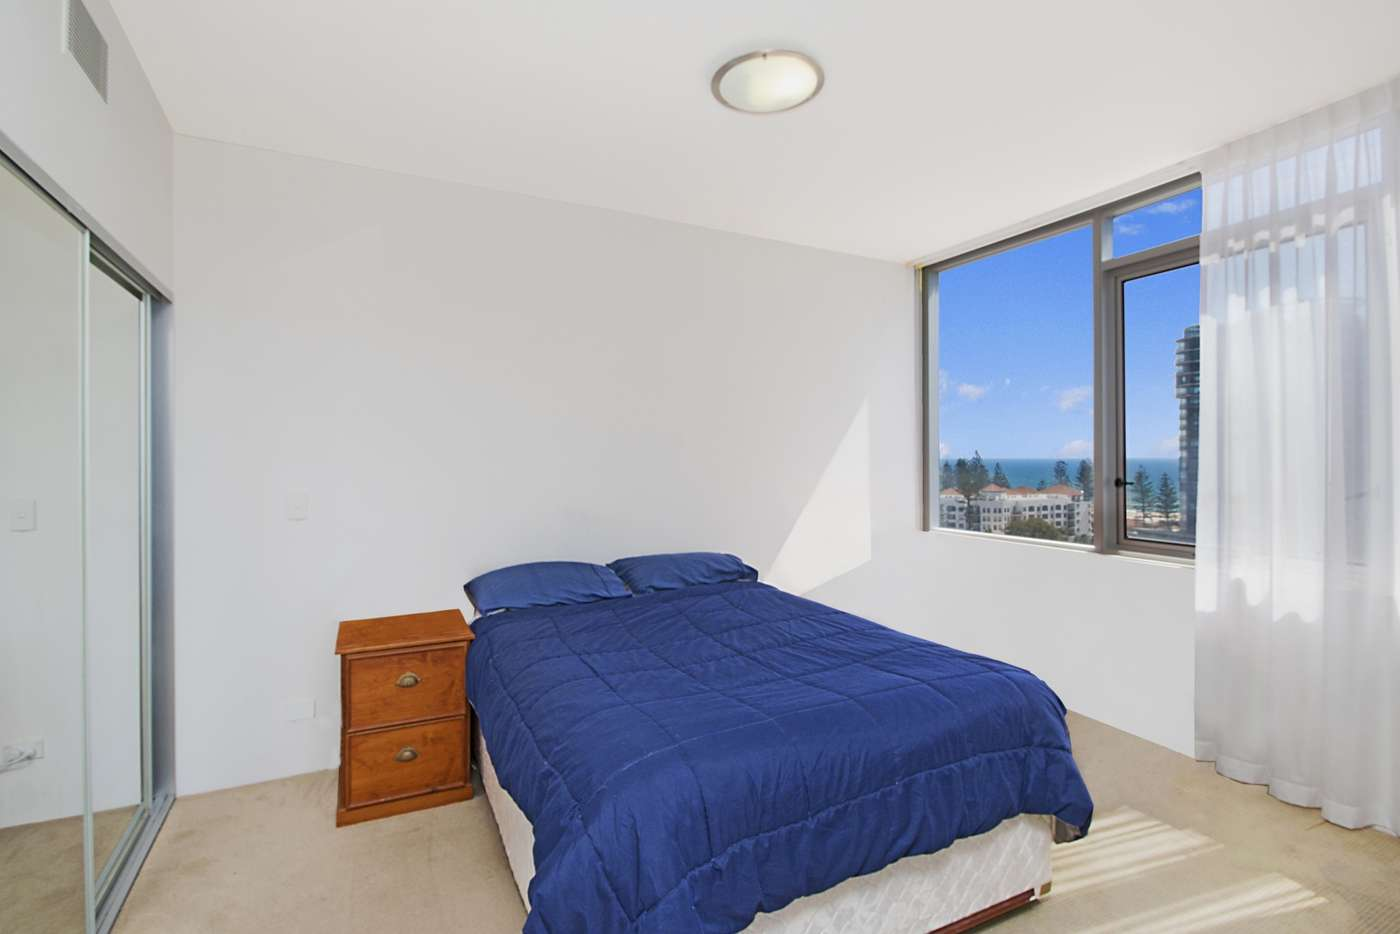 Sixth view of Homely unit listing, 1103/14 Stuart Street, Tweed Heads NSW 2485